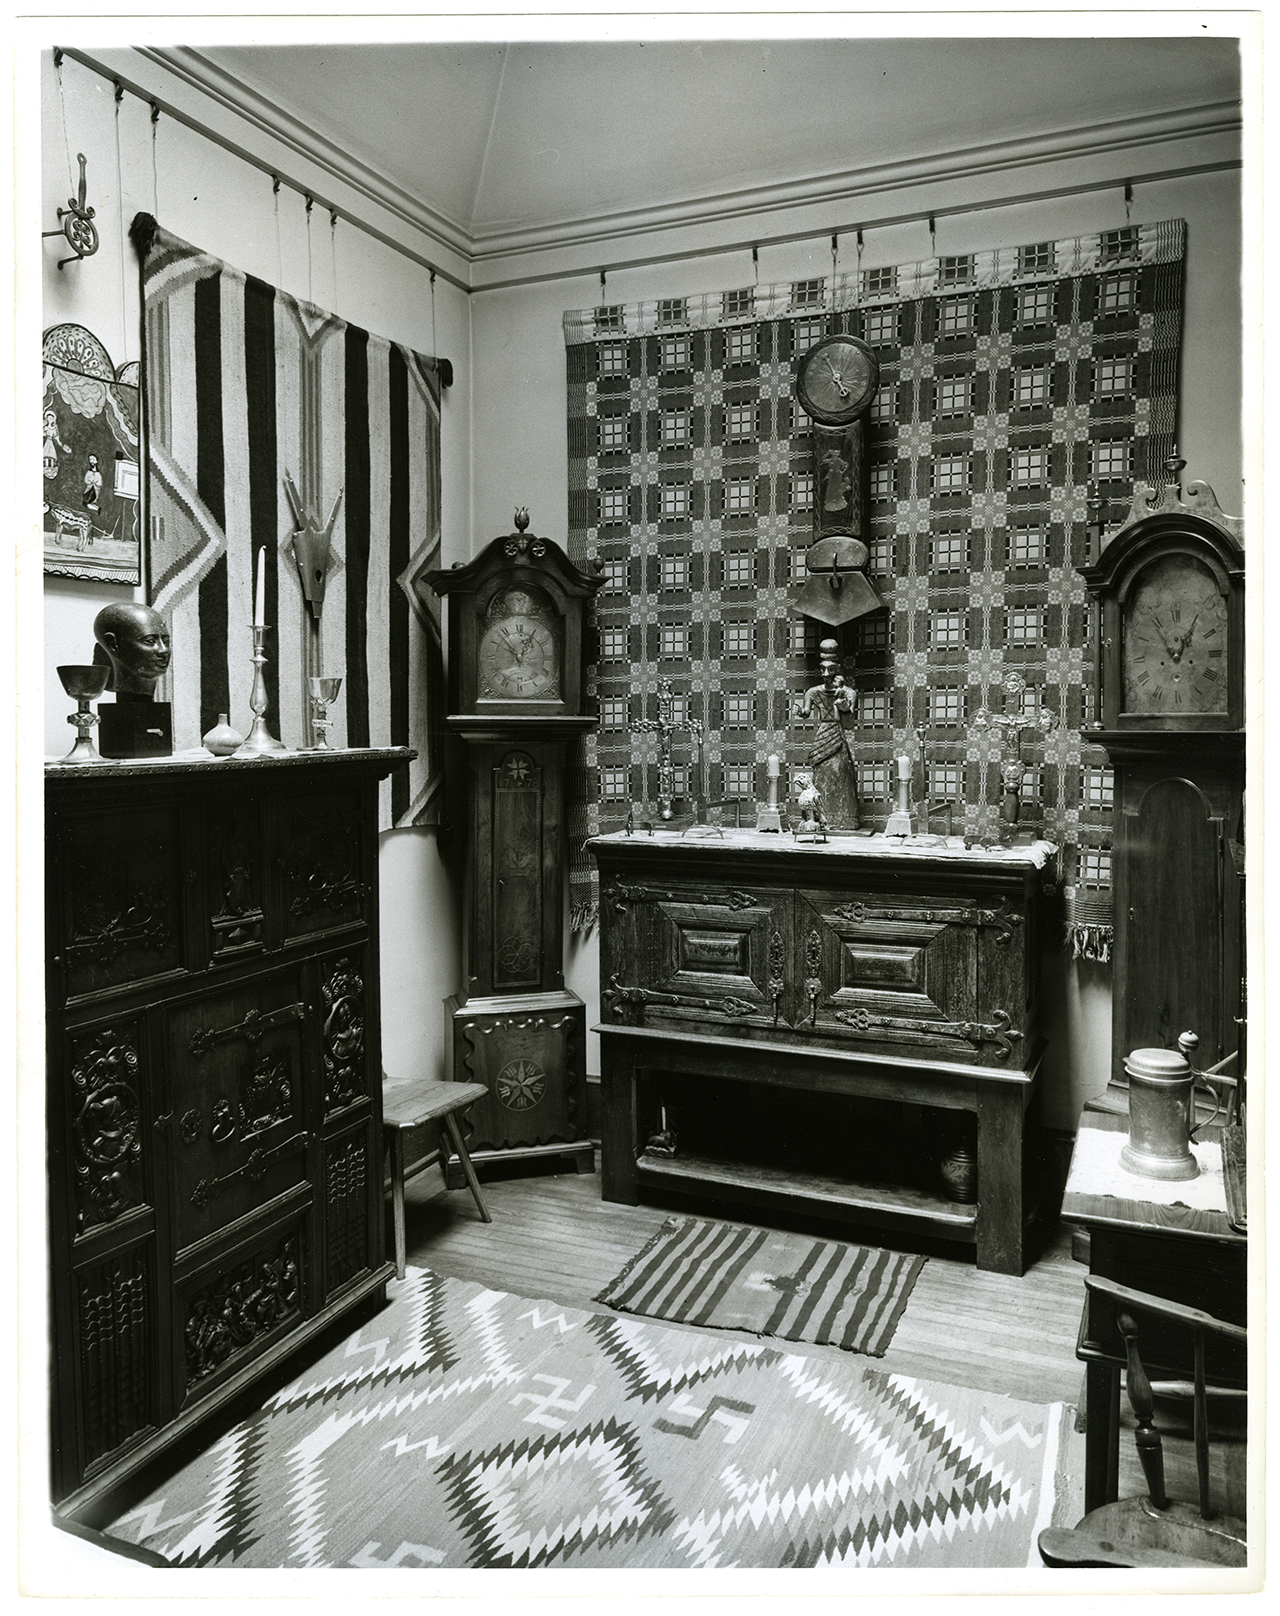 Dutch Room at the Barnes Foundation, northwest corner, c. 1952 (photo by Angelo Pinto, Photograph Collection, Barnes Foundation Archives, Merion, PA)